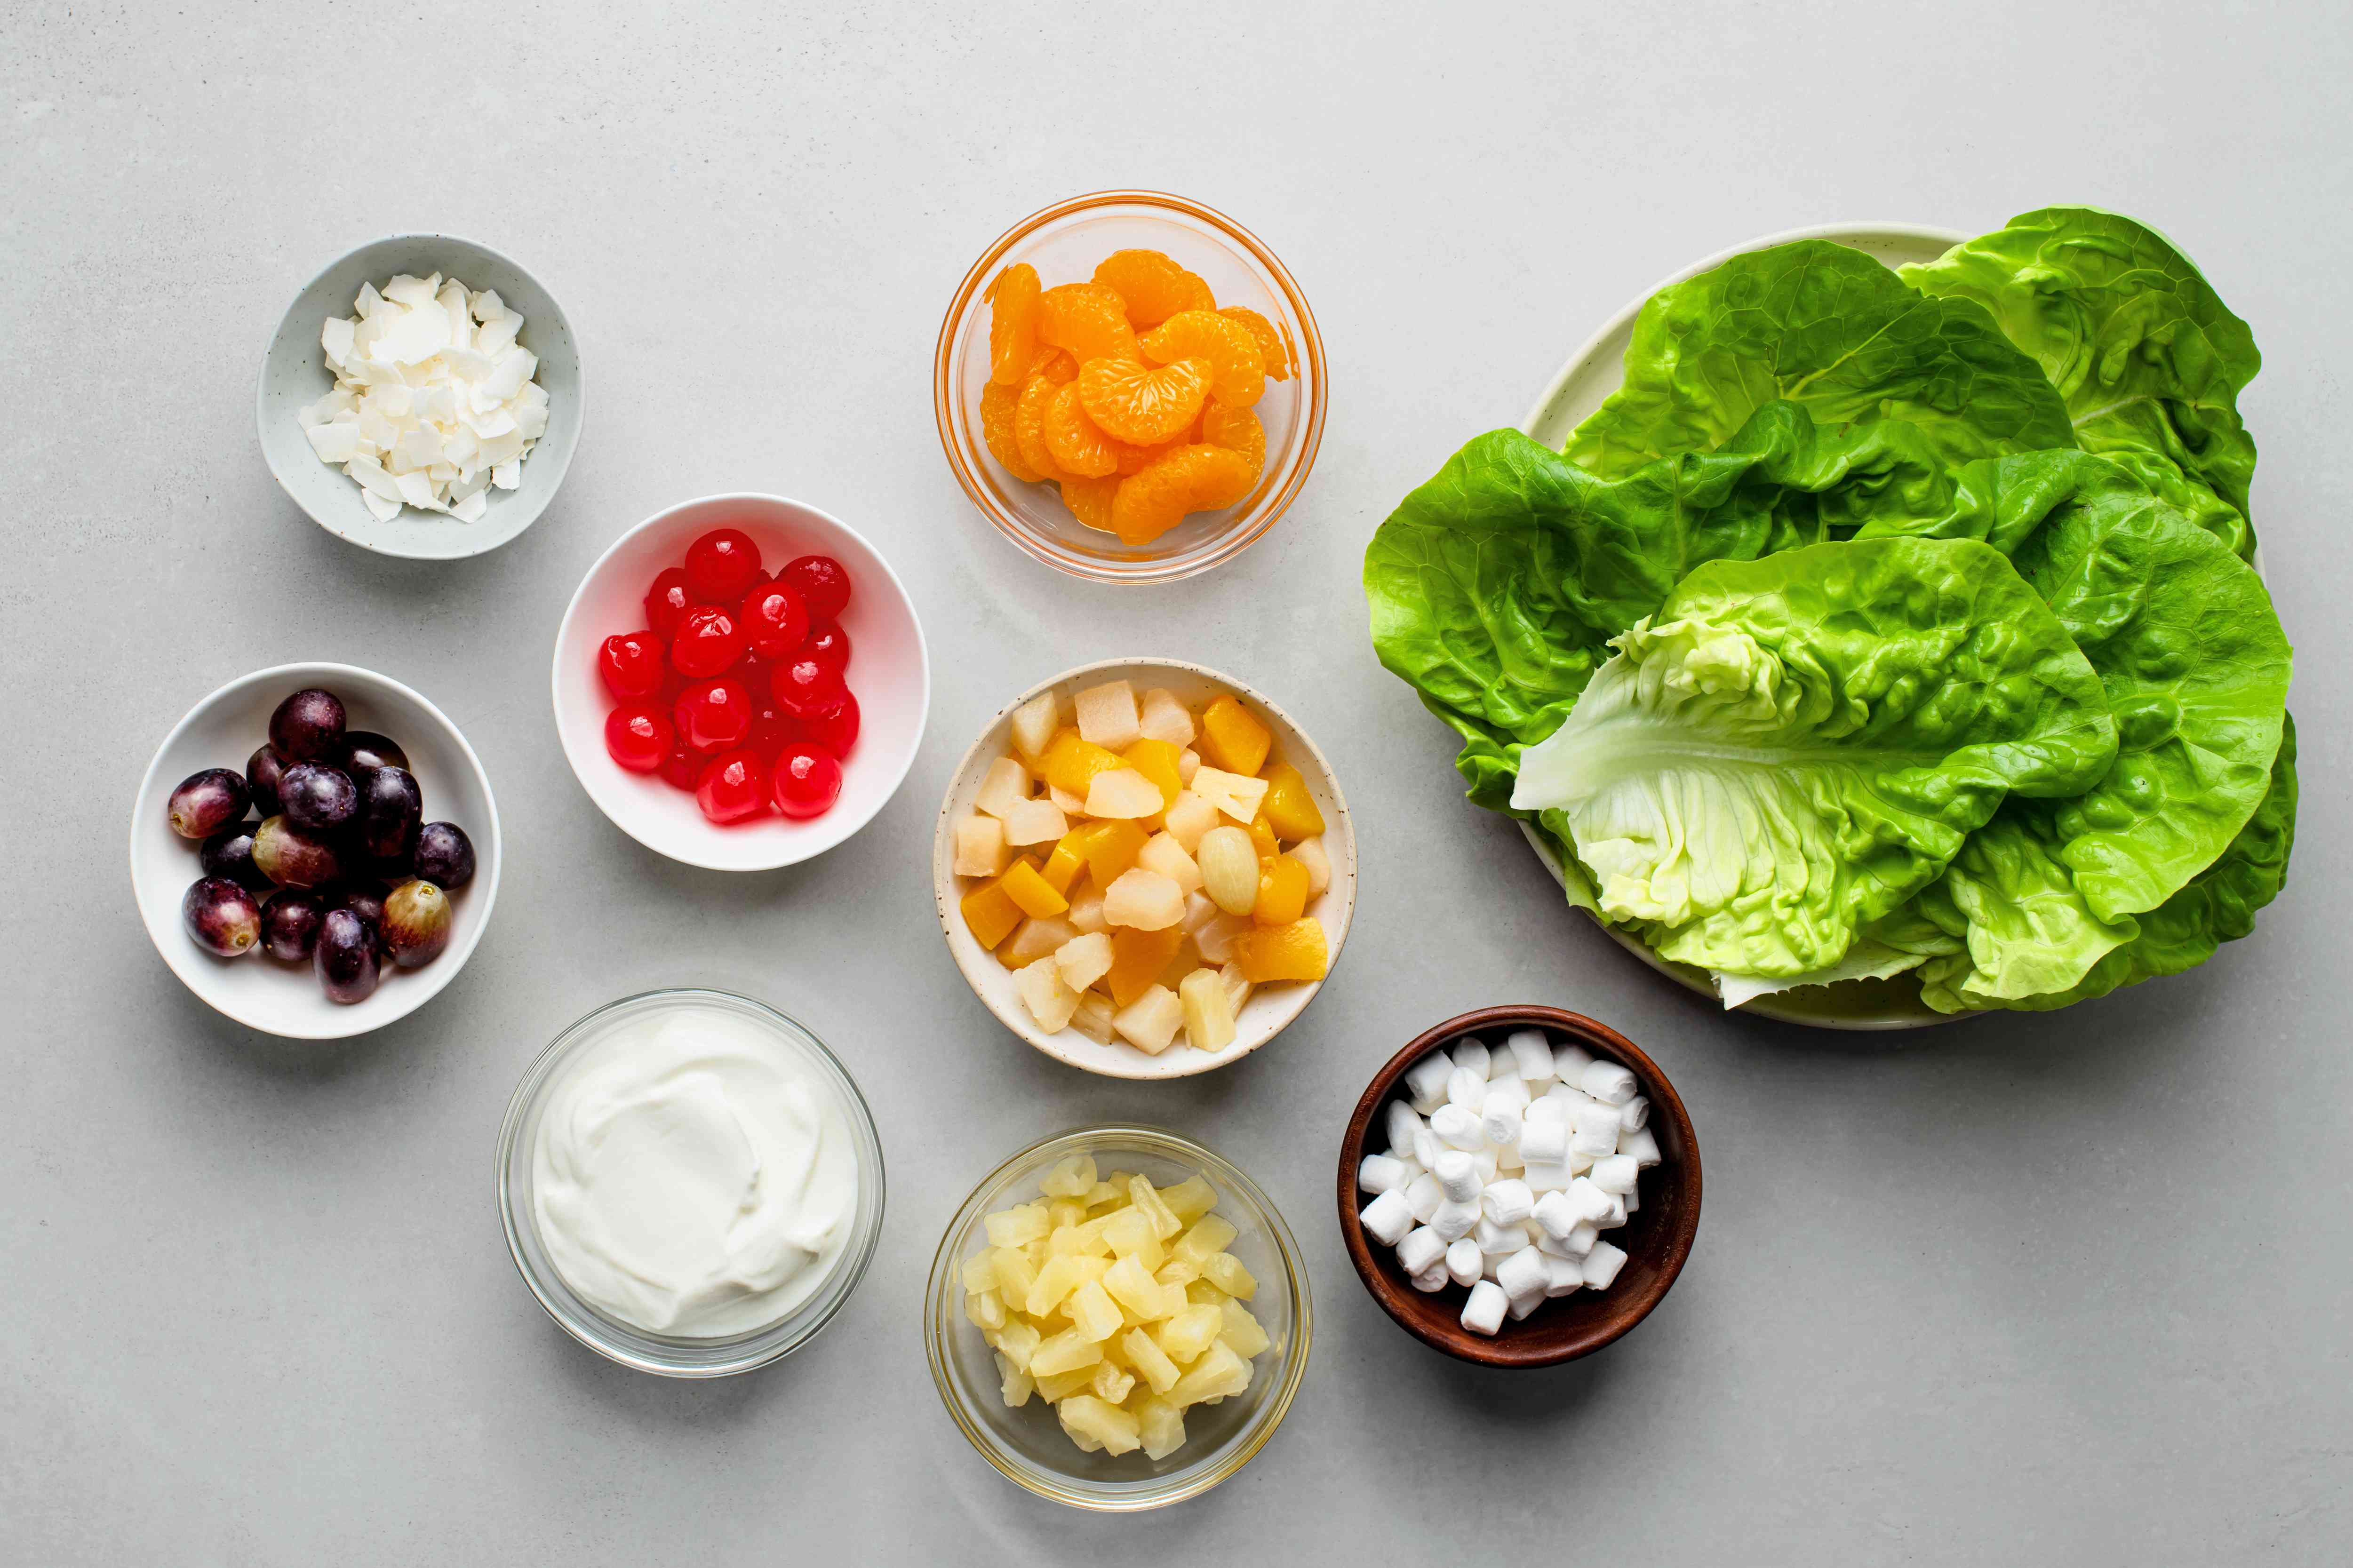 Ambrosia Fruit Salad With Sour Cream Dressing ingredients